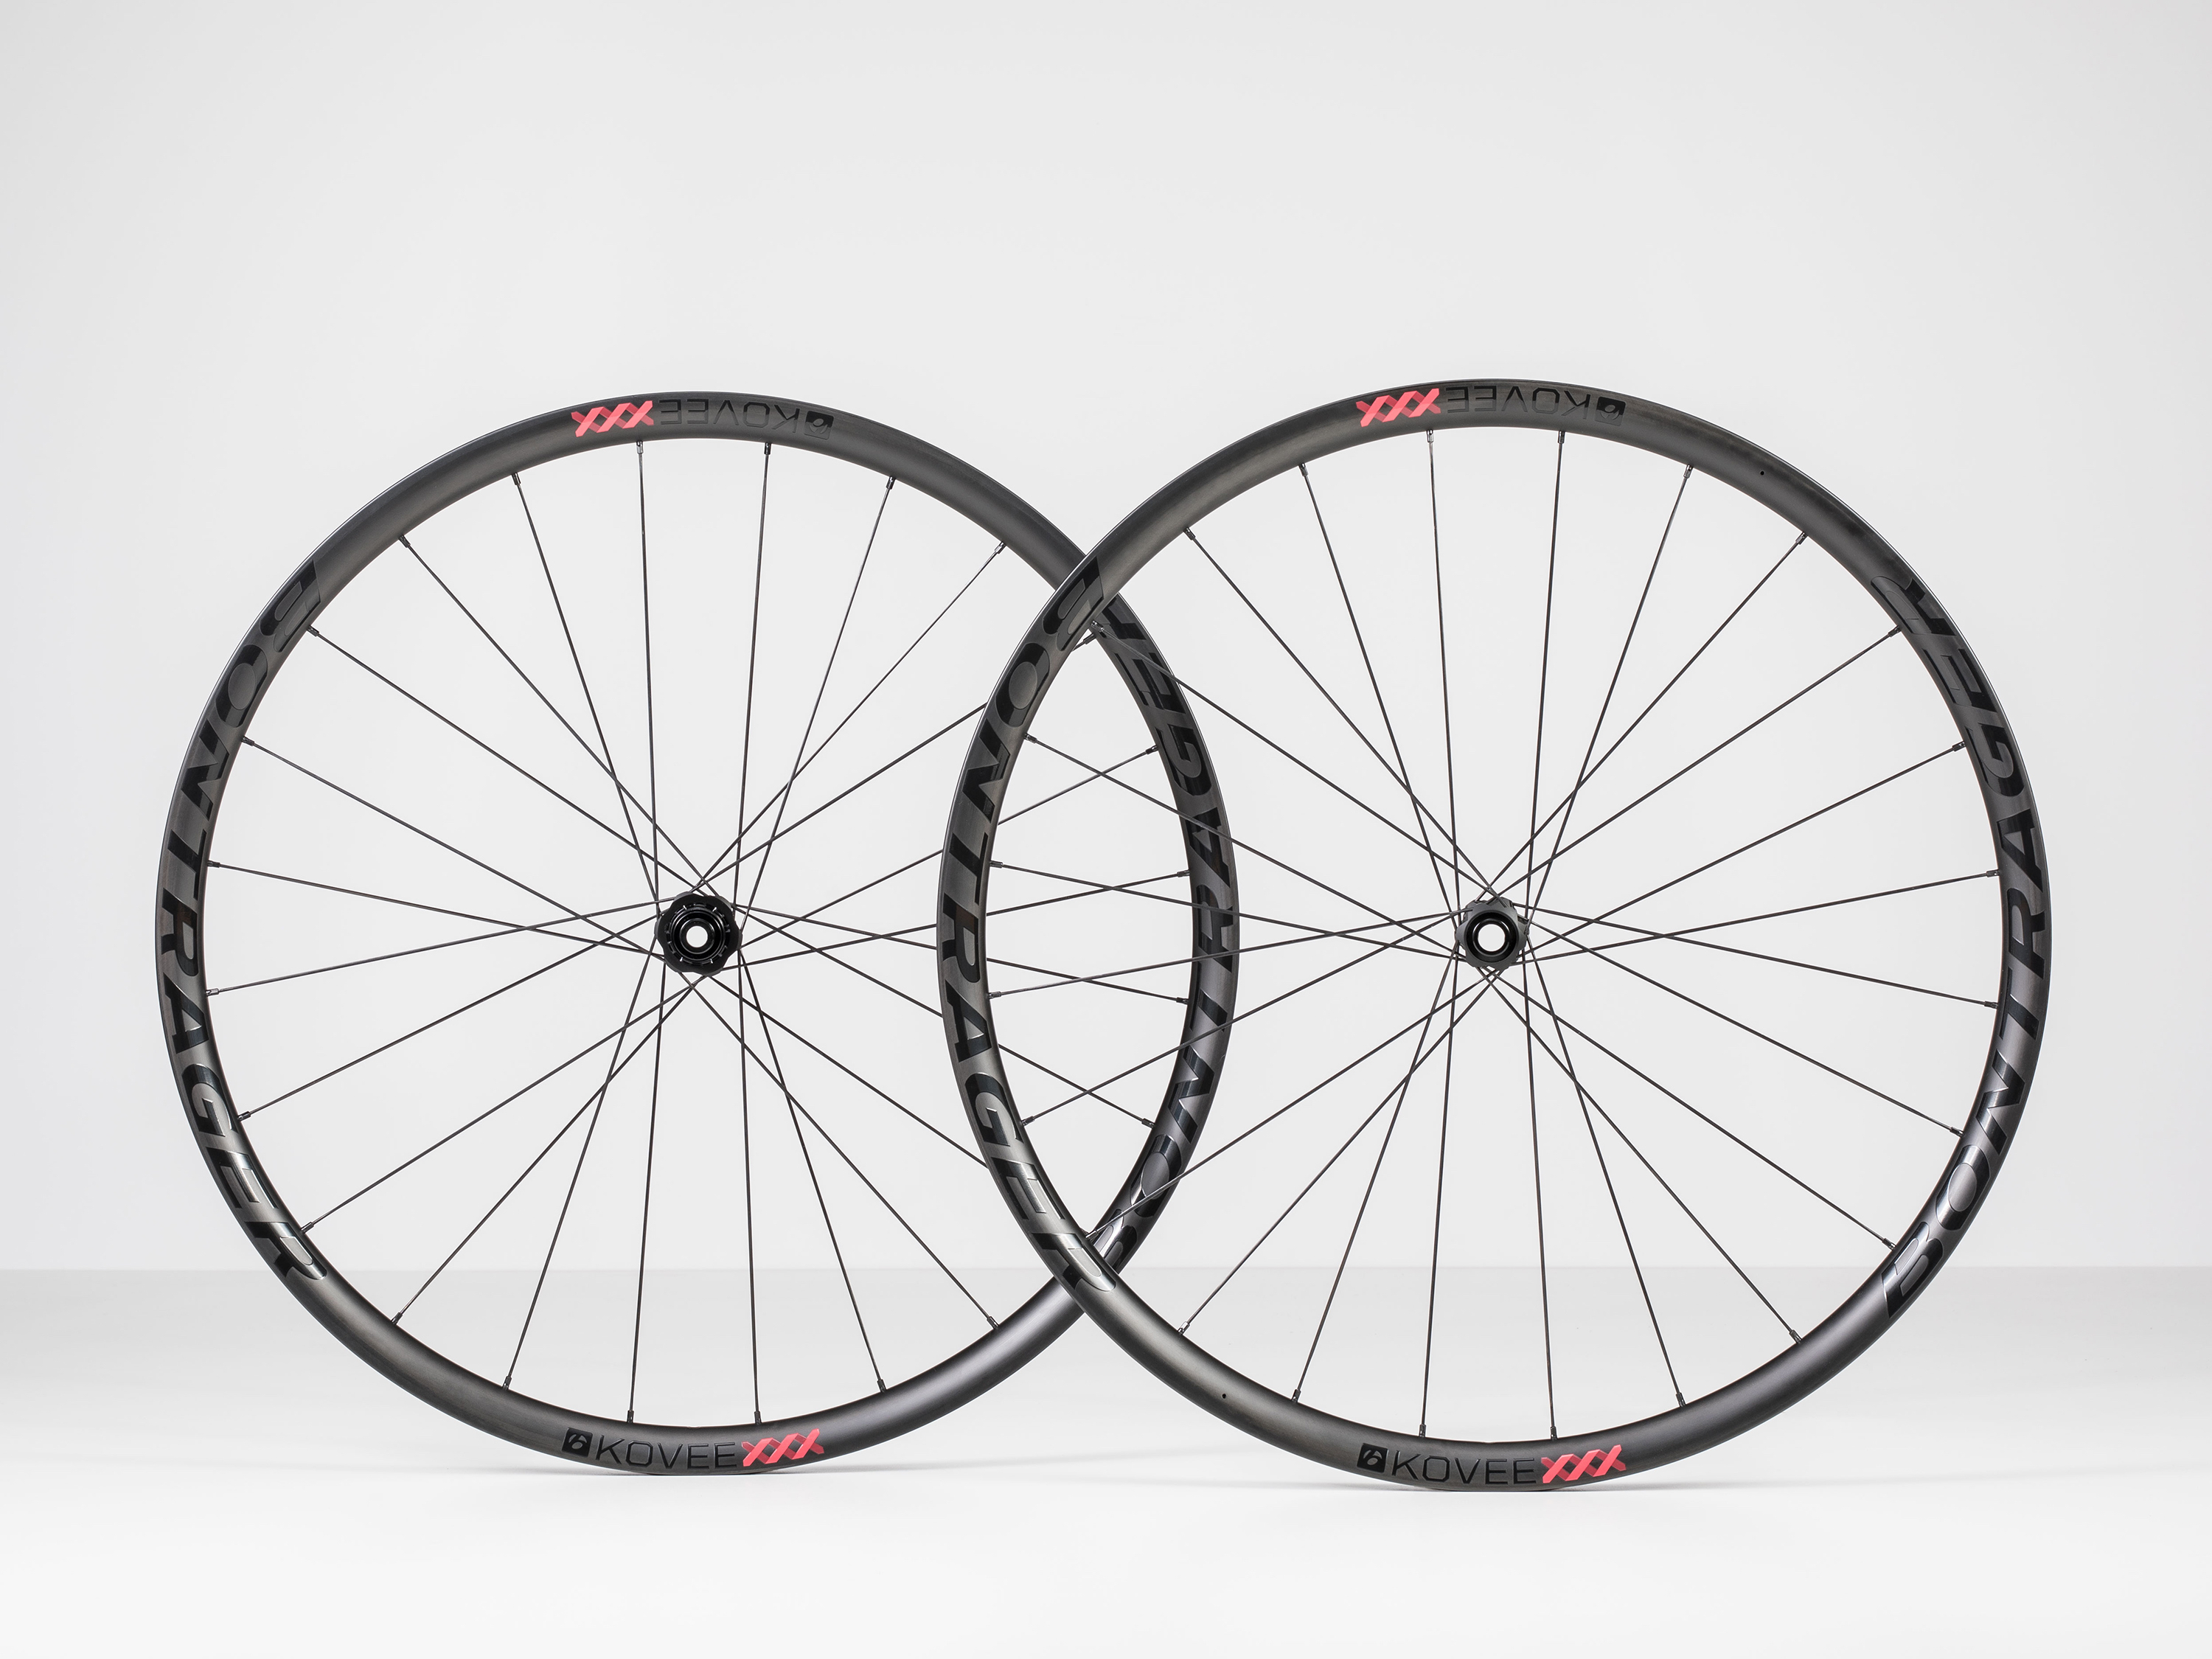 Bontrager Kovee Wheelset Announced